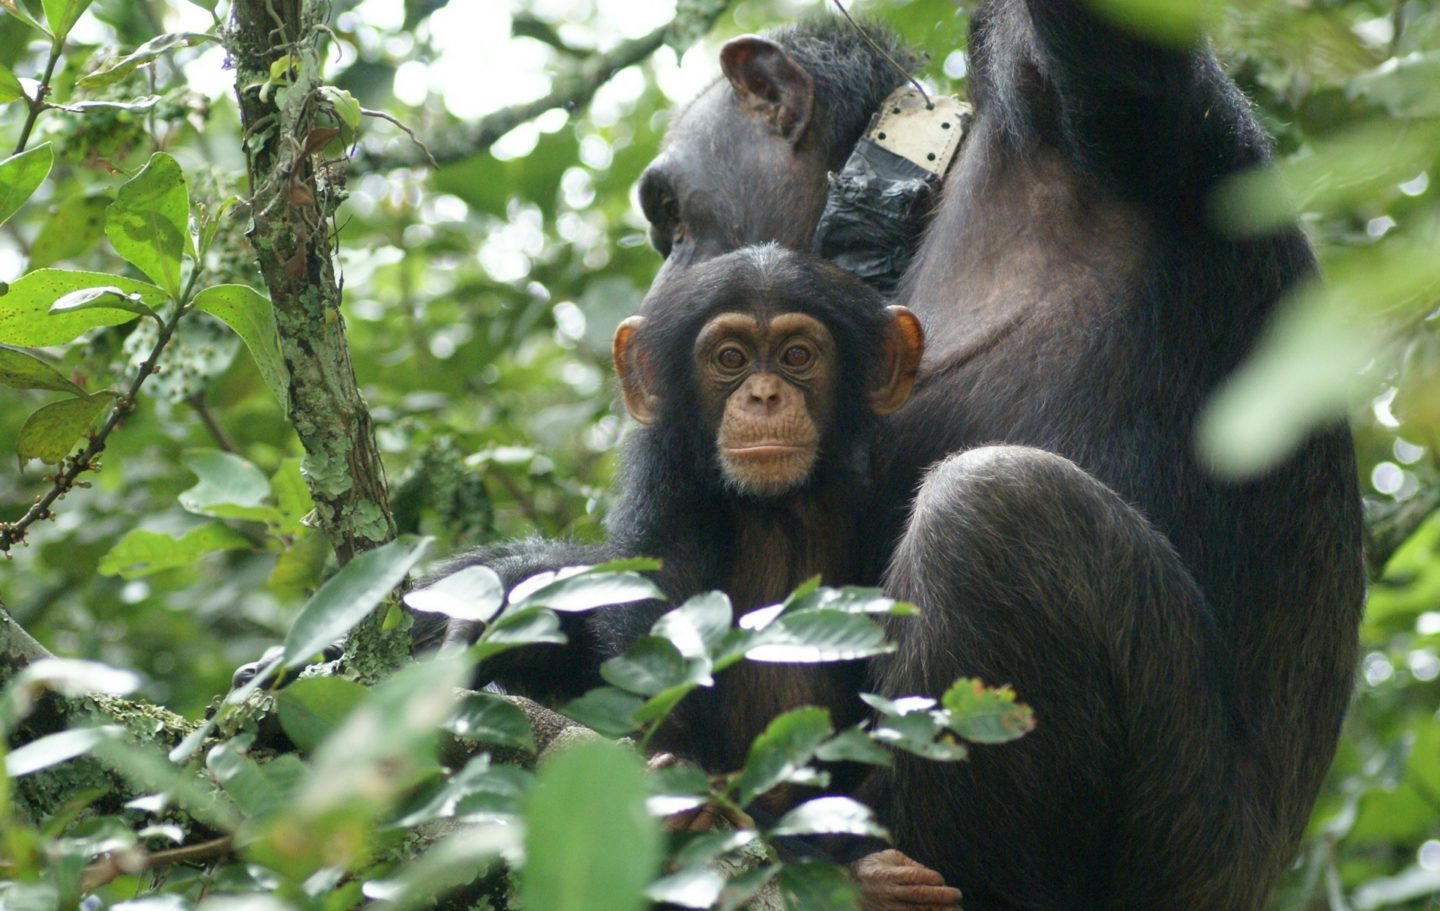 Tusk Trust - Chimpanzee Conservation Center 2